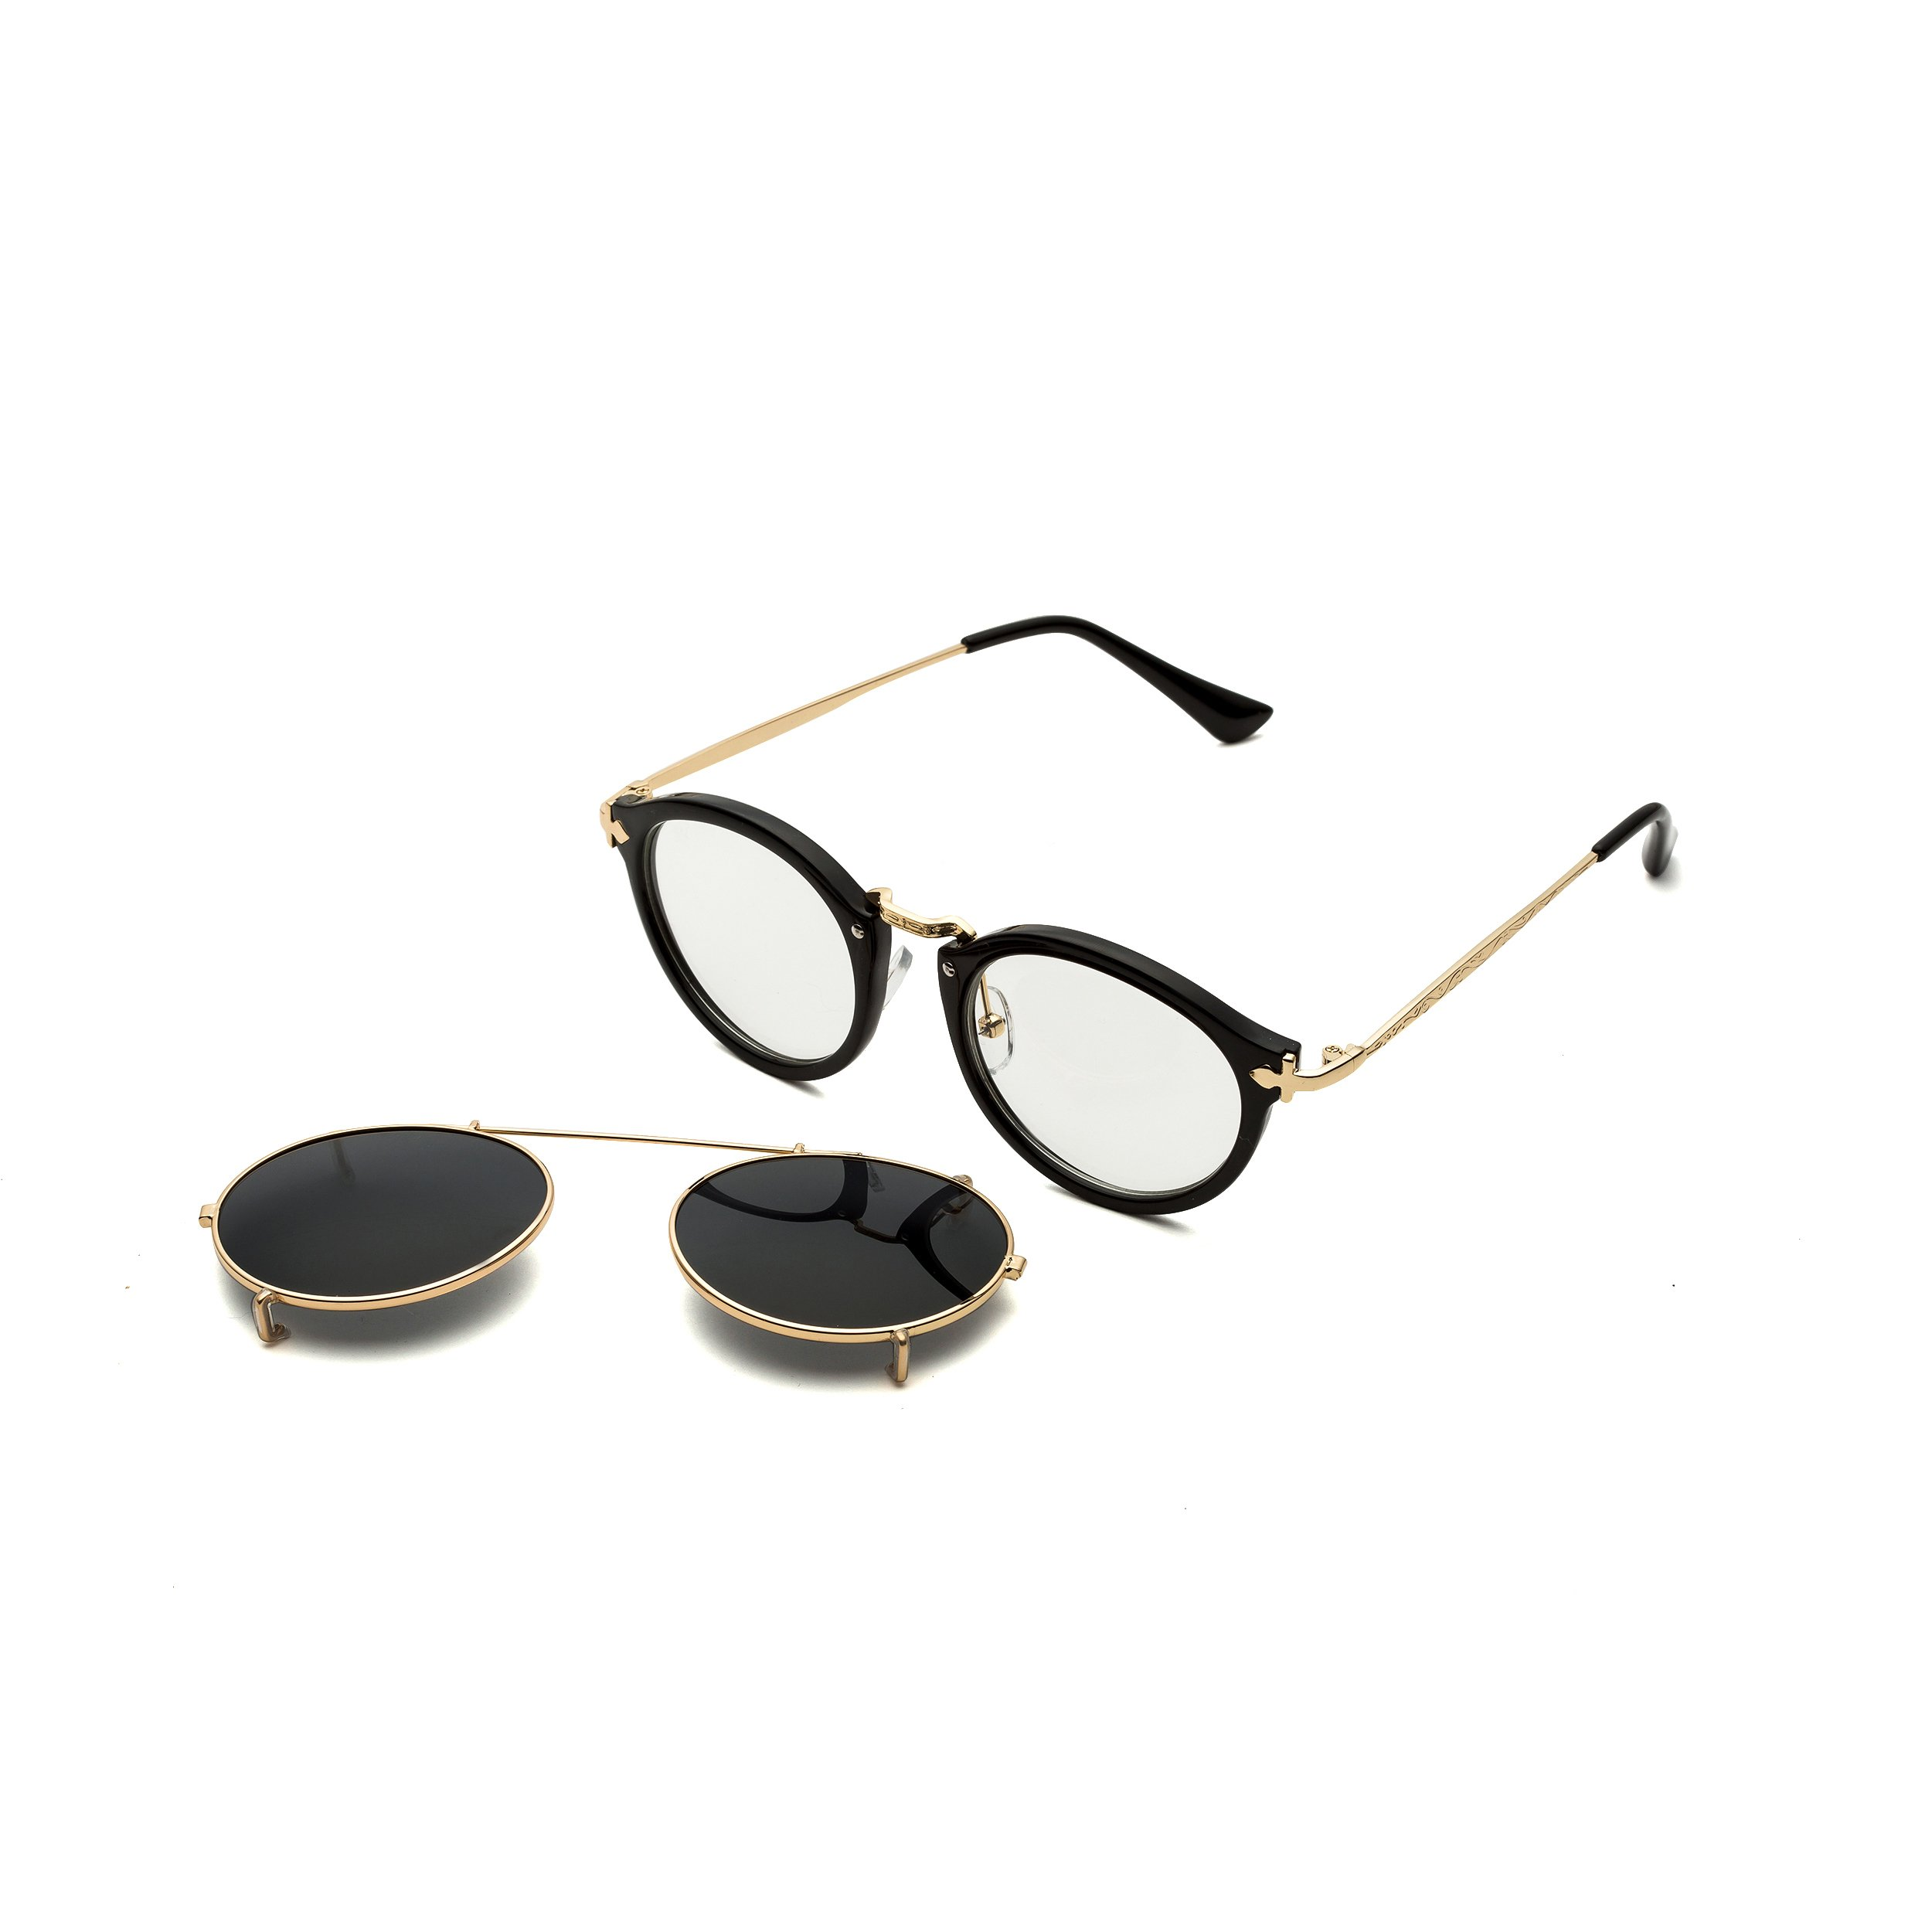 330bd1cce50 Dollger Double Lens Flip up Clip On Sunglasses Steampunk Style and Round  Black Glasses for Men   Sunglasses   Clothing